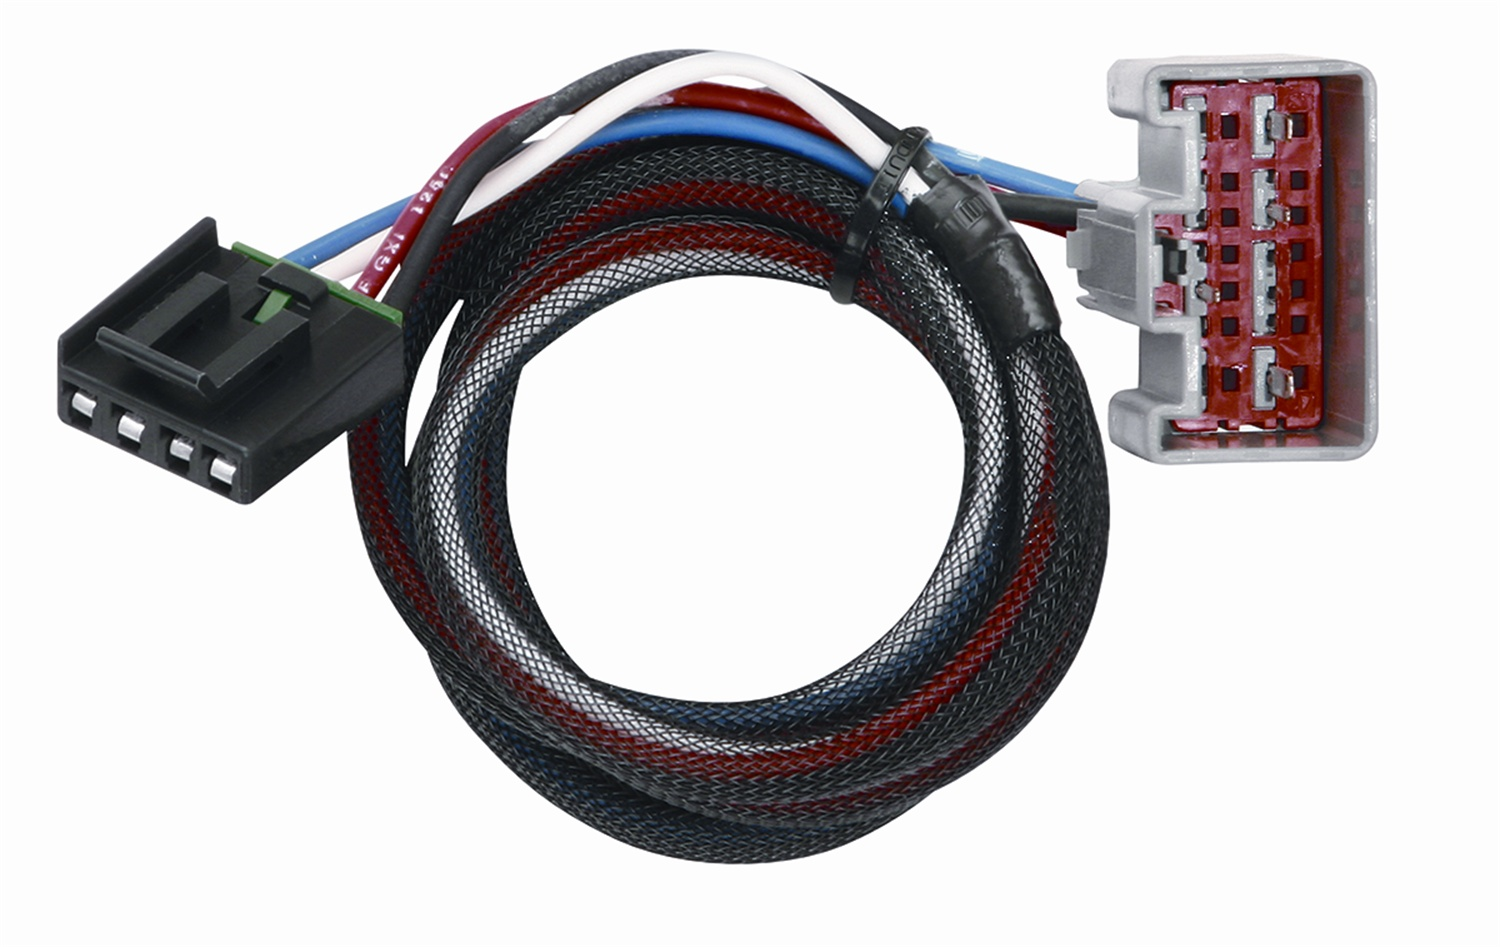 tekonsha voyager specs 3 way switch with dimmer wiring diagram 3036 p brake control adapter 2 plugs ford 7 x 4 in